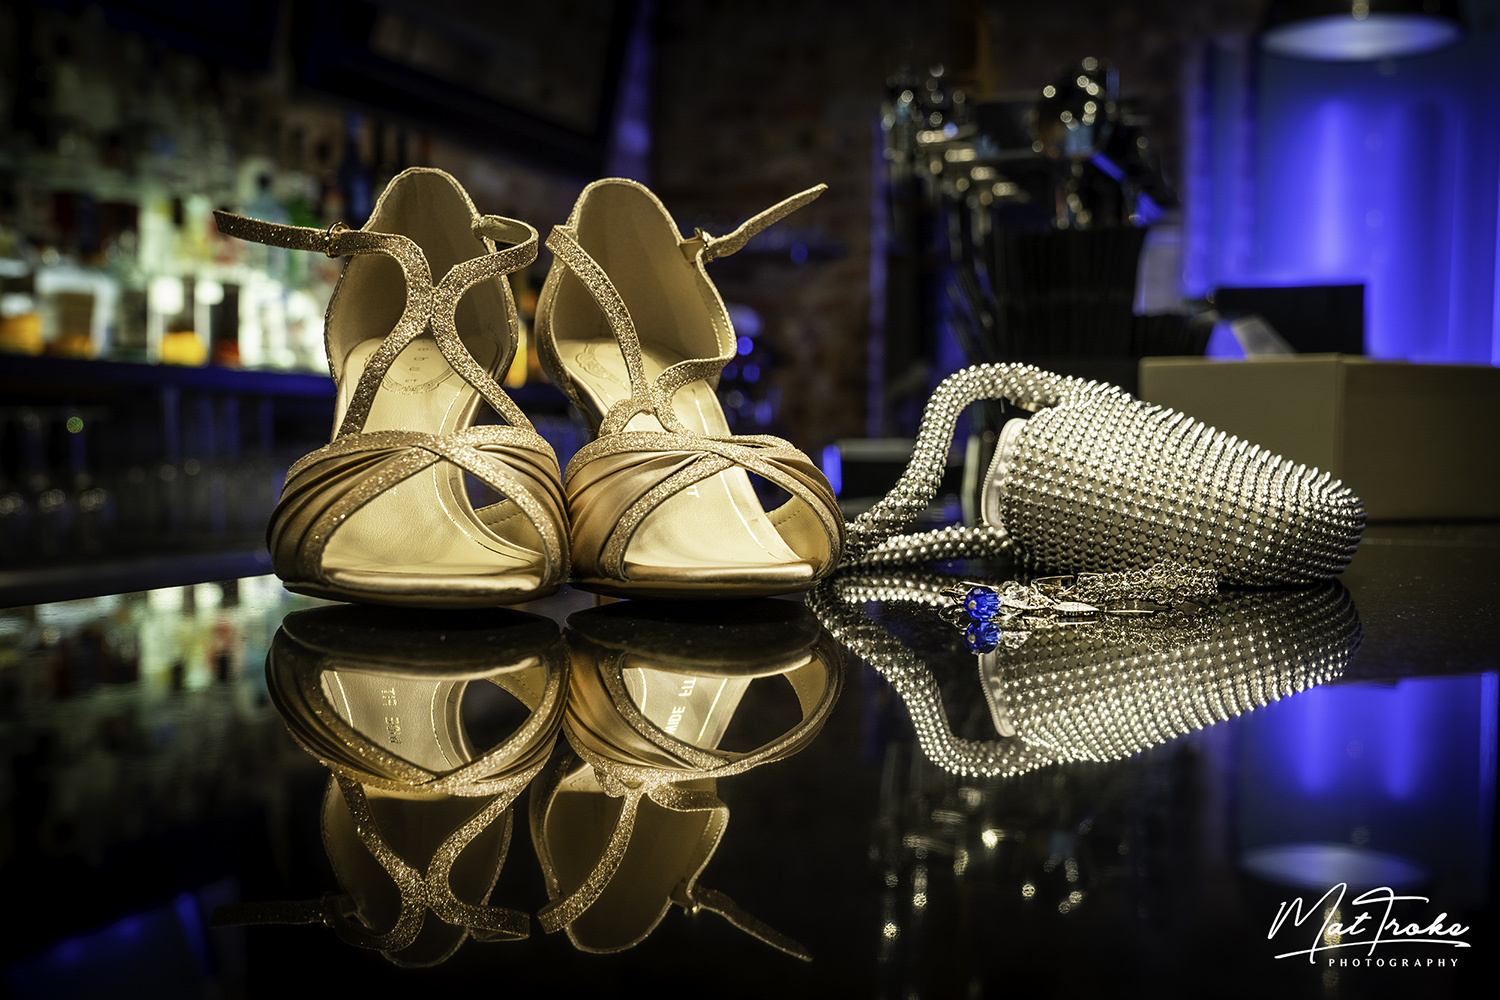 two_brides_reflection_shoes_bride_wedding_photography_mour_hotel_dekota_photographer_mansfield_sherwood.jpg